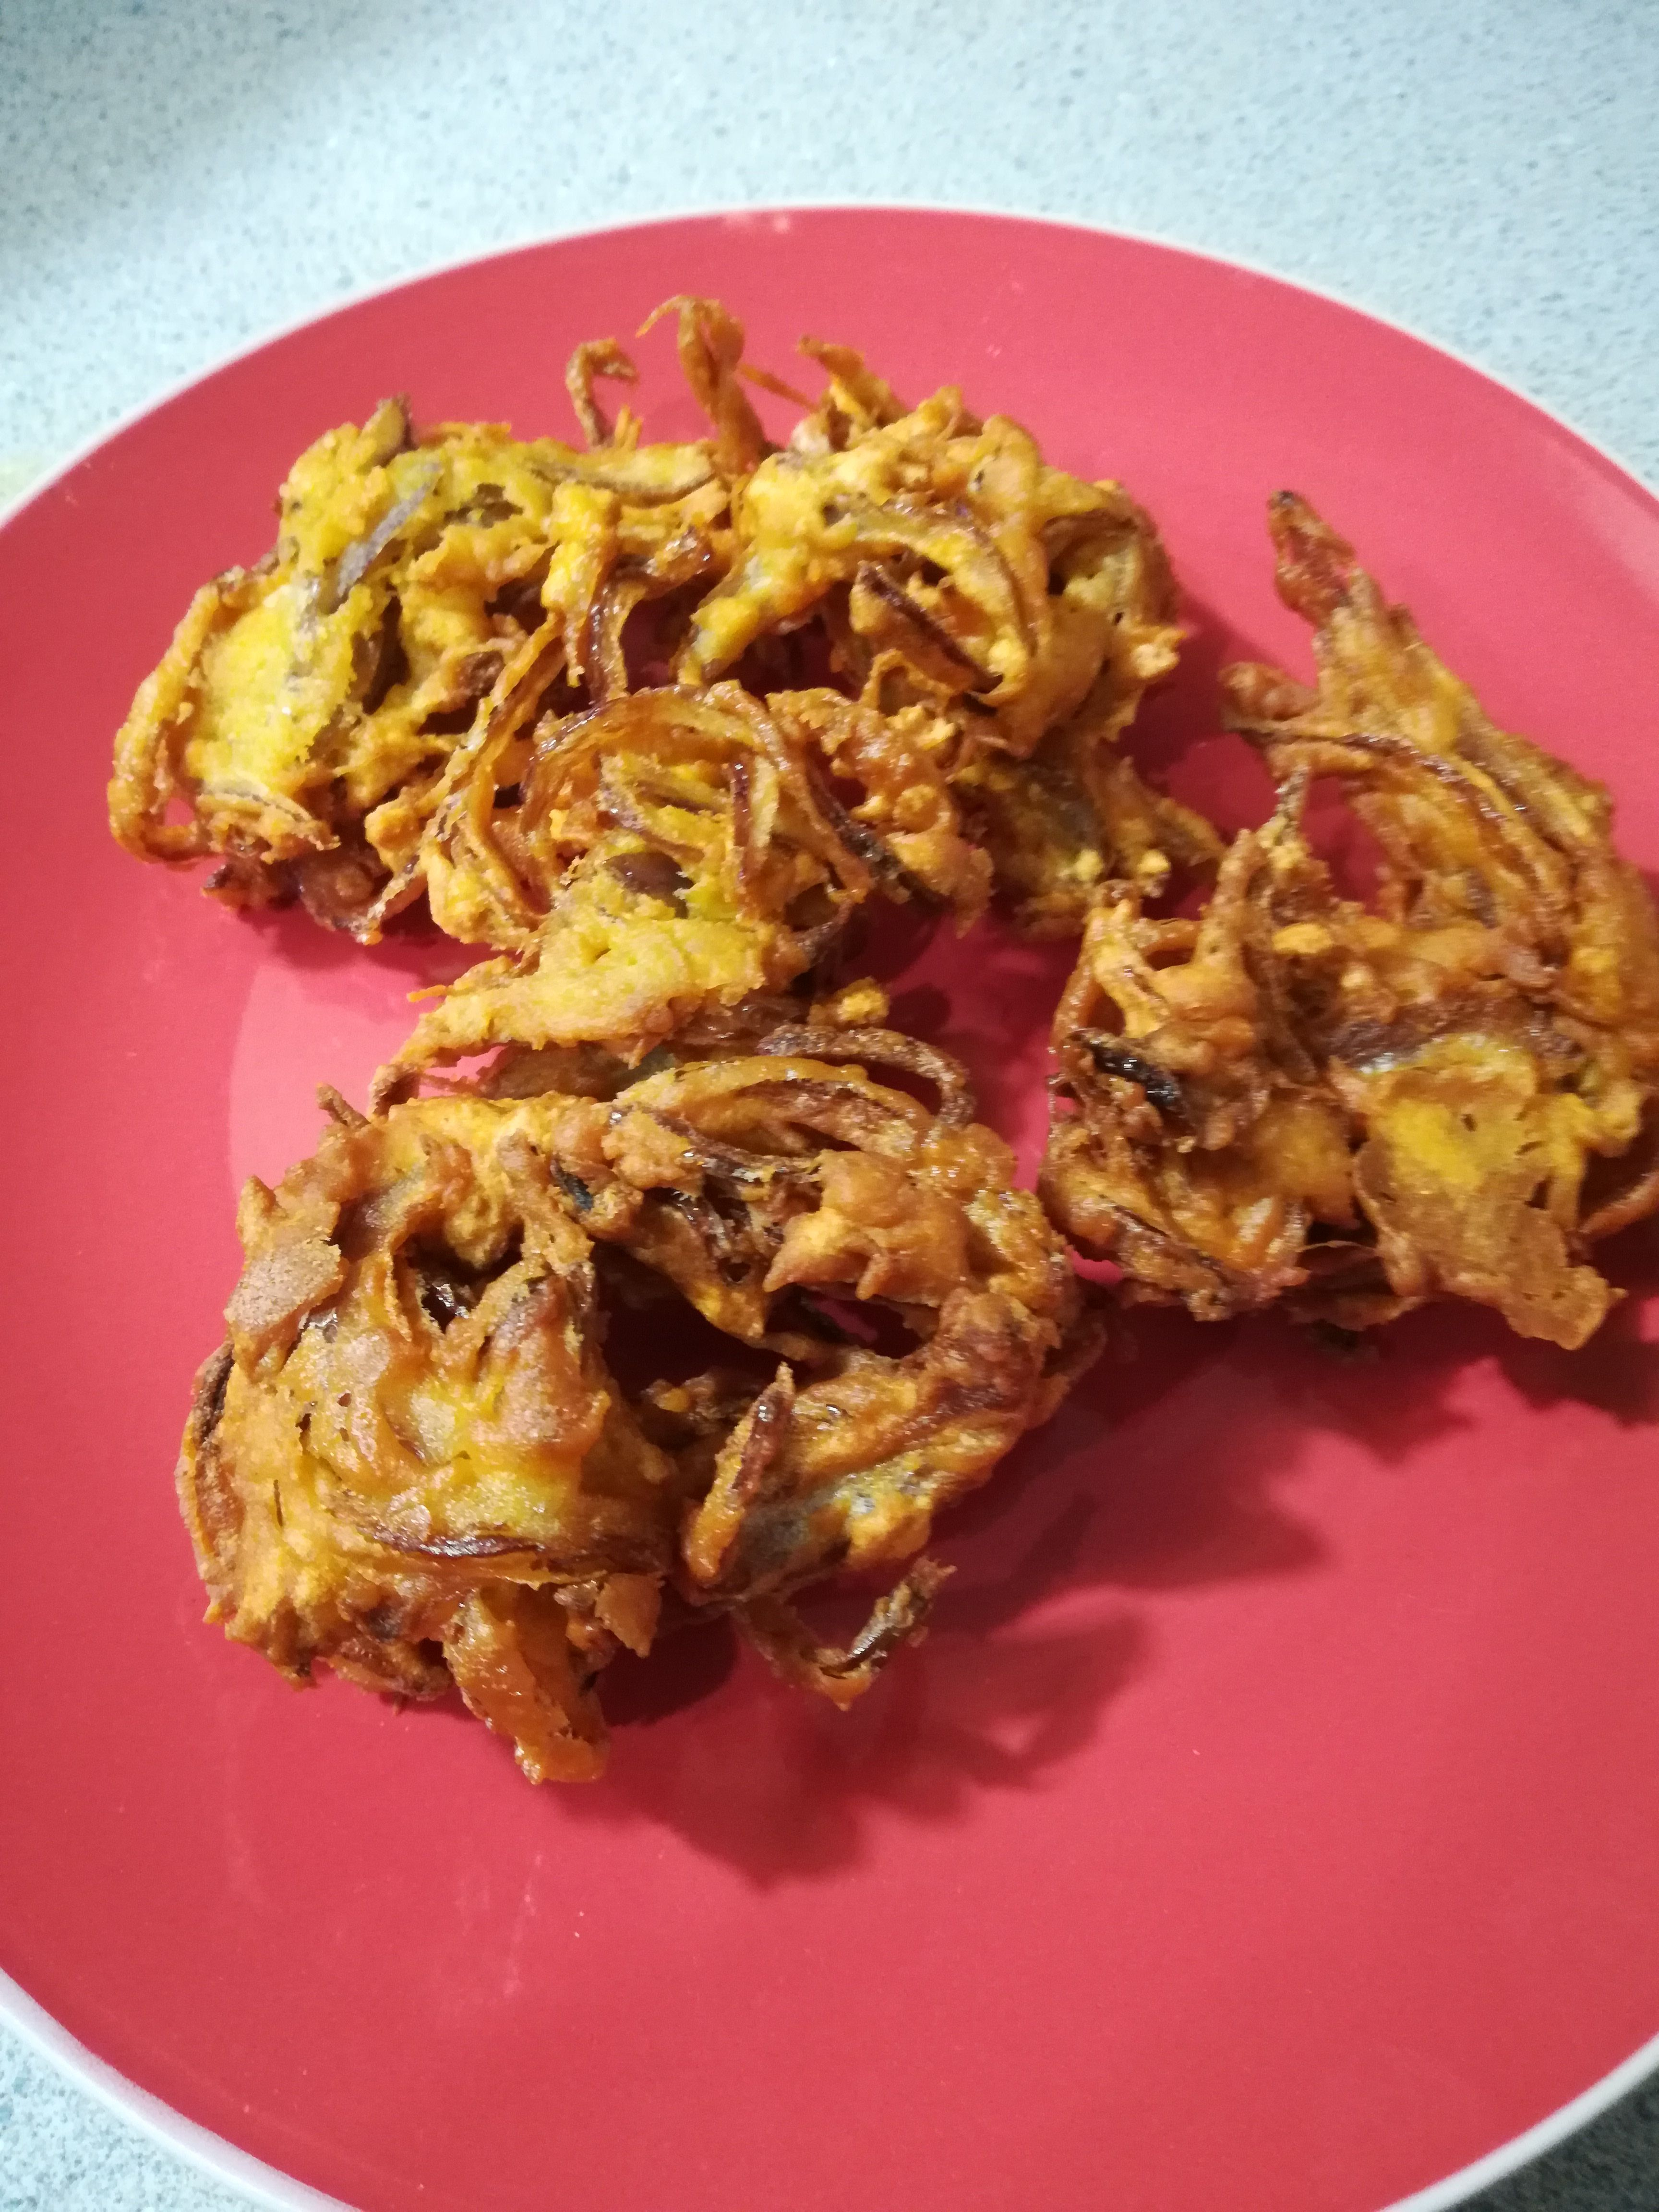 Cuisine India Onion Fritters Cuisine India Serves 4 Ingredients Gram Flour